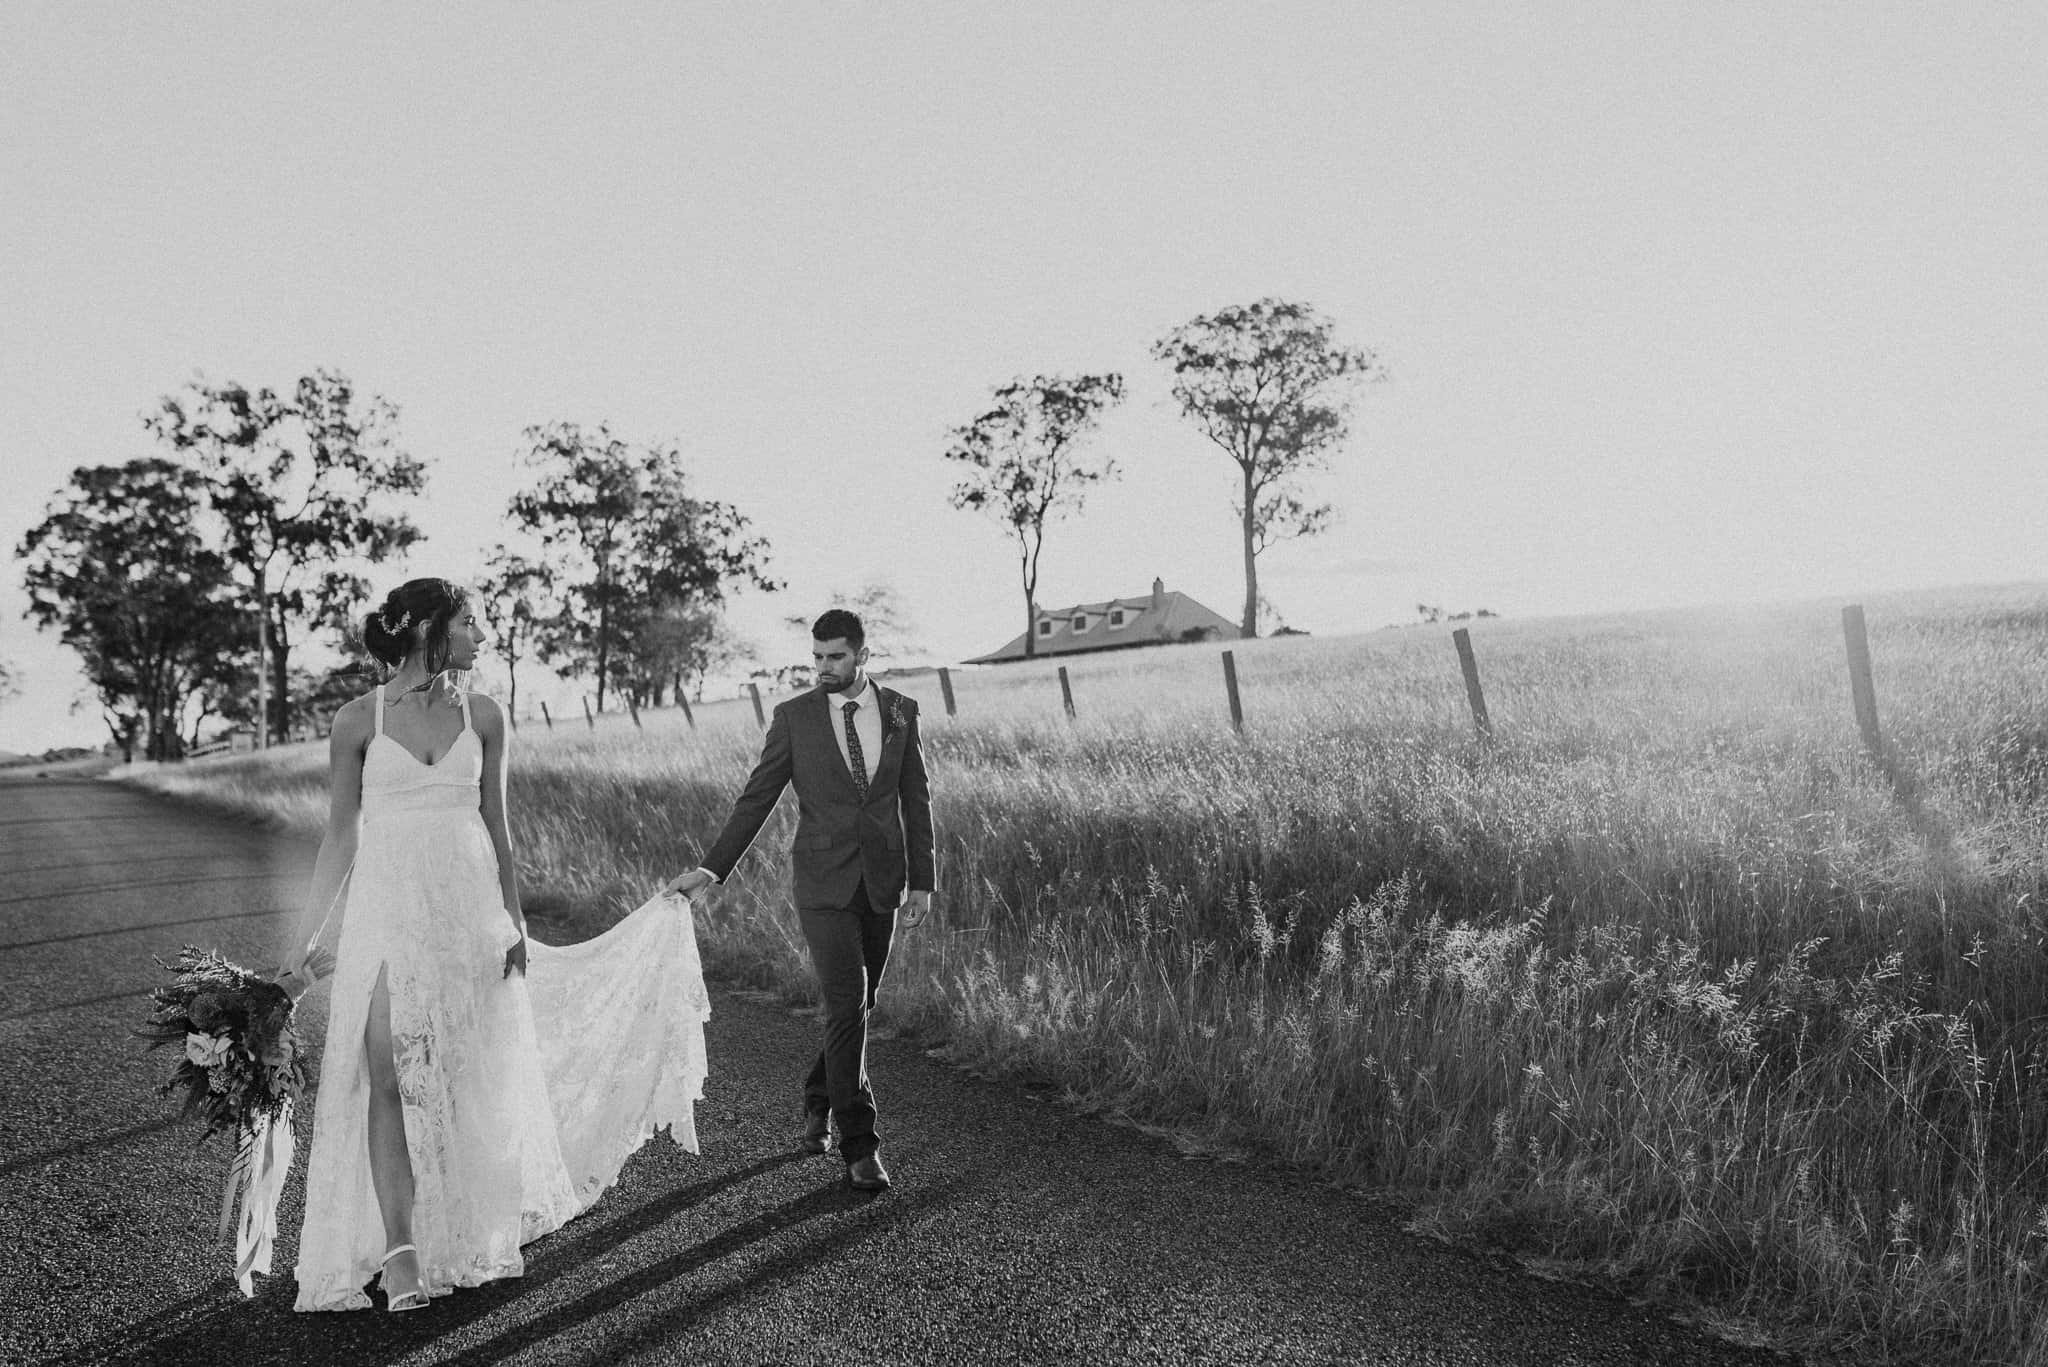 bride and groom walk down the road at estate tuscany.